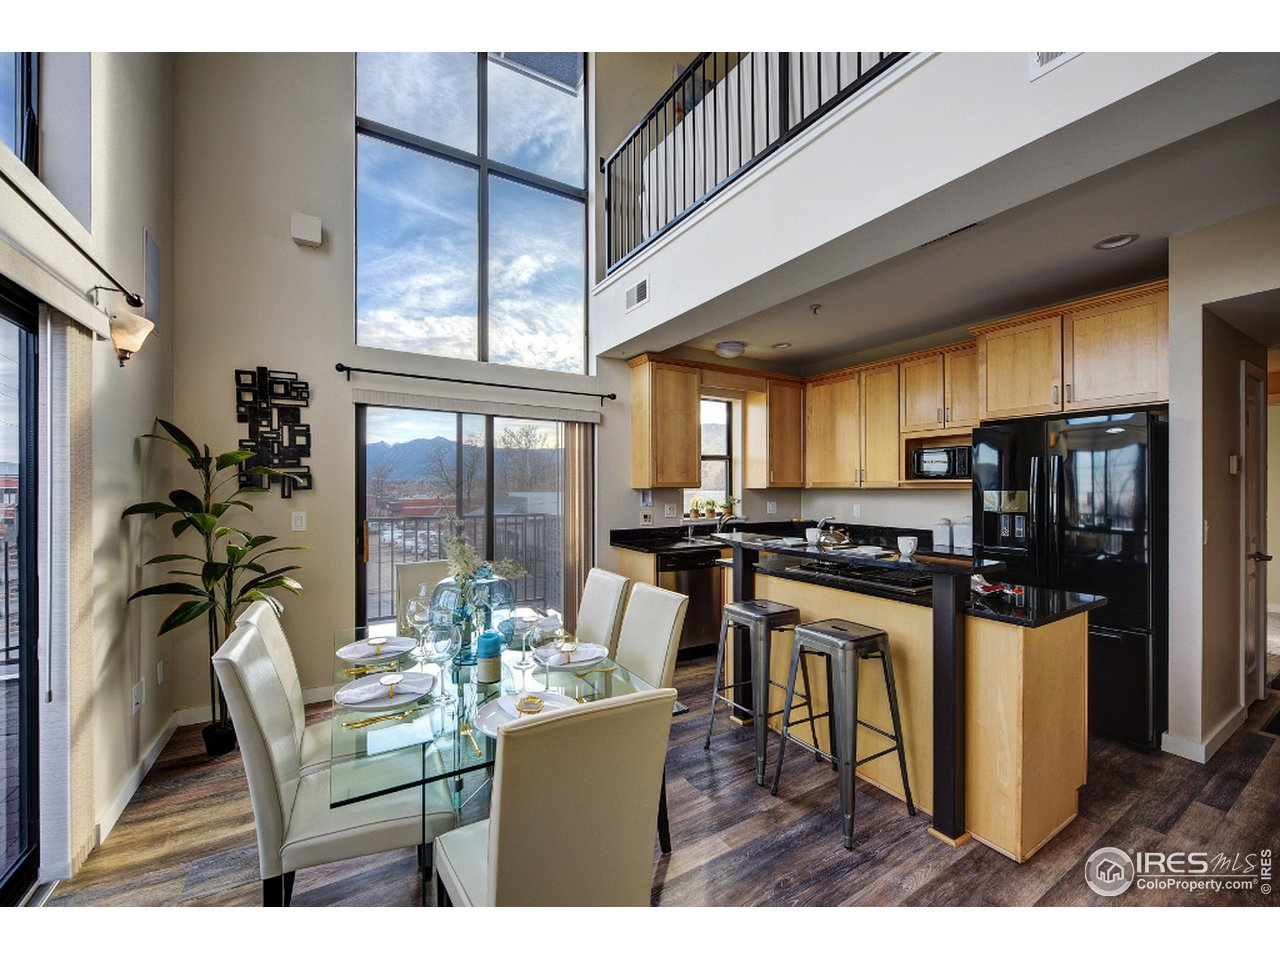 Dining area with walls of windows and THOSE VIEWS!